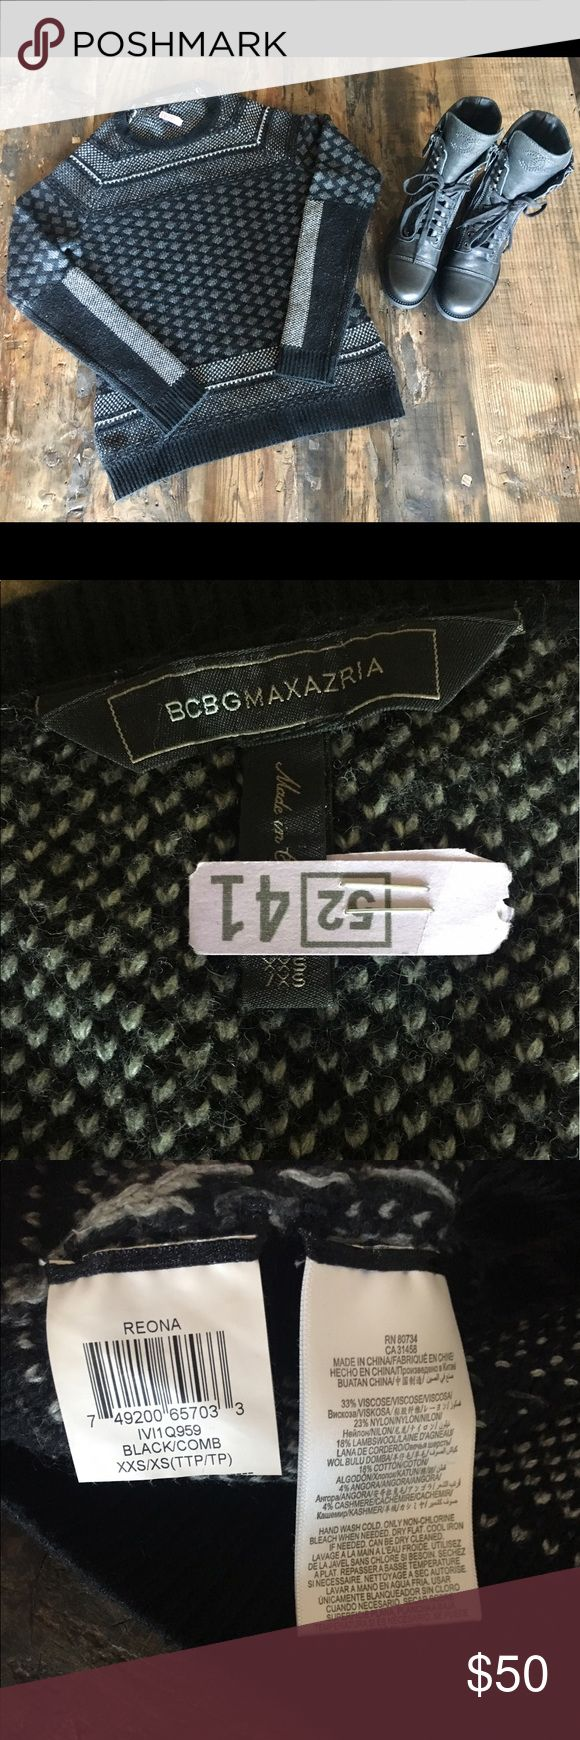 EUC BCBGMaxAzria Sweater, Black/Gray, Size XXS/XS Excellent Used Condition BCBGMaxAzria Sweater. I'm XS in this brand and this fits me perfect. Really cute pattern and very versatile that piece can outlast any season or fashion trend. BCBGMaxAzria Sweaters